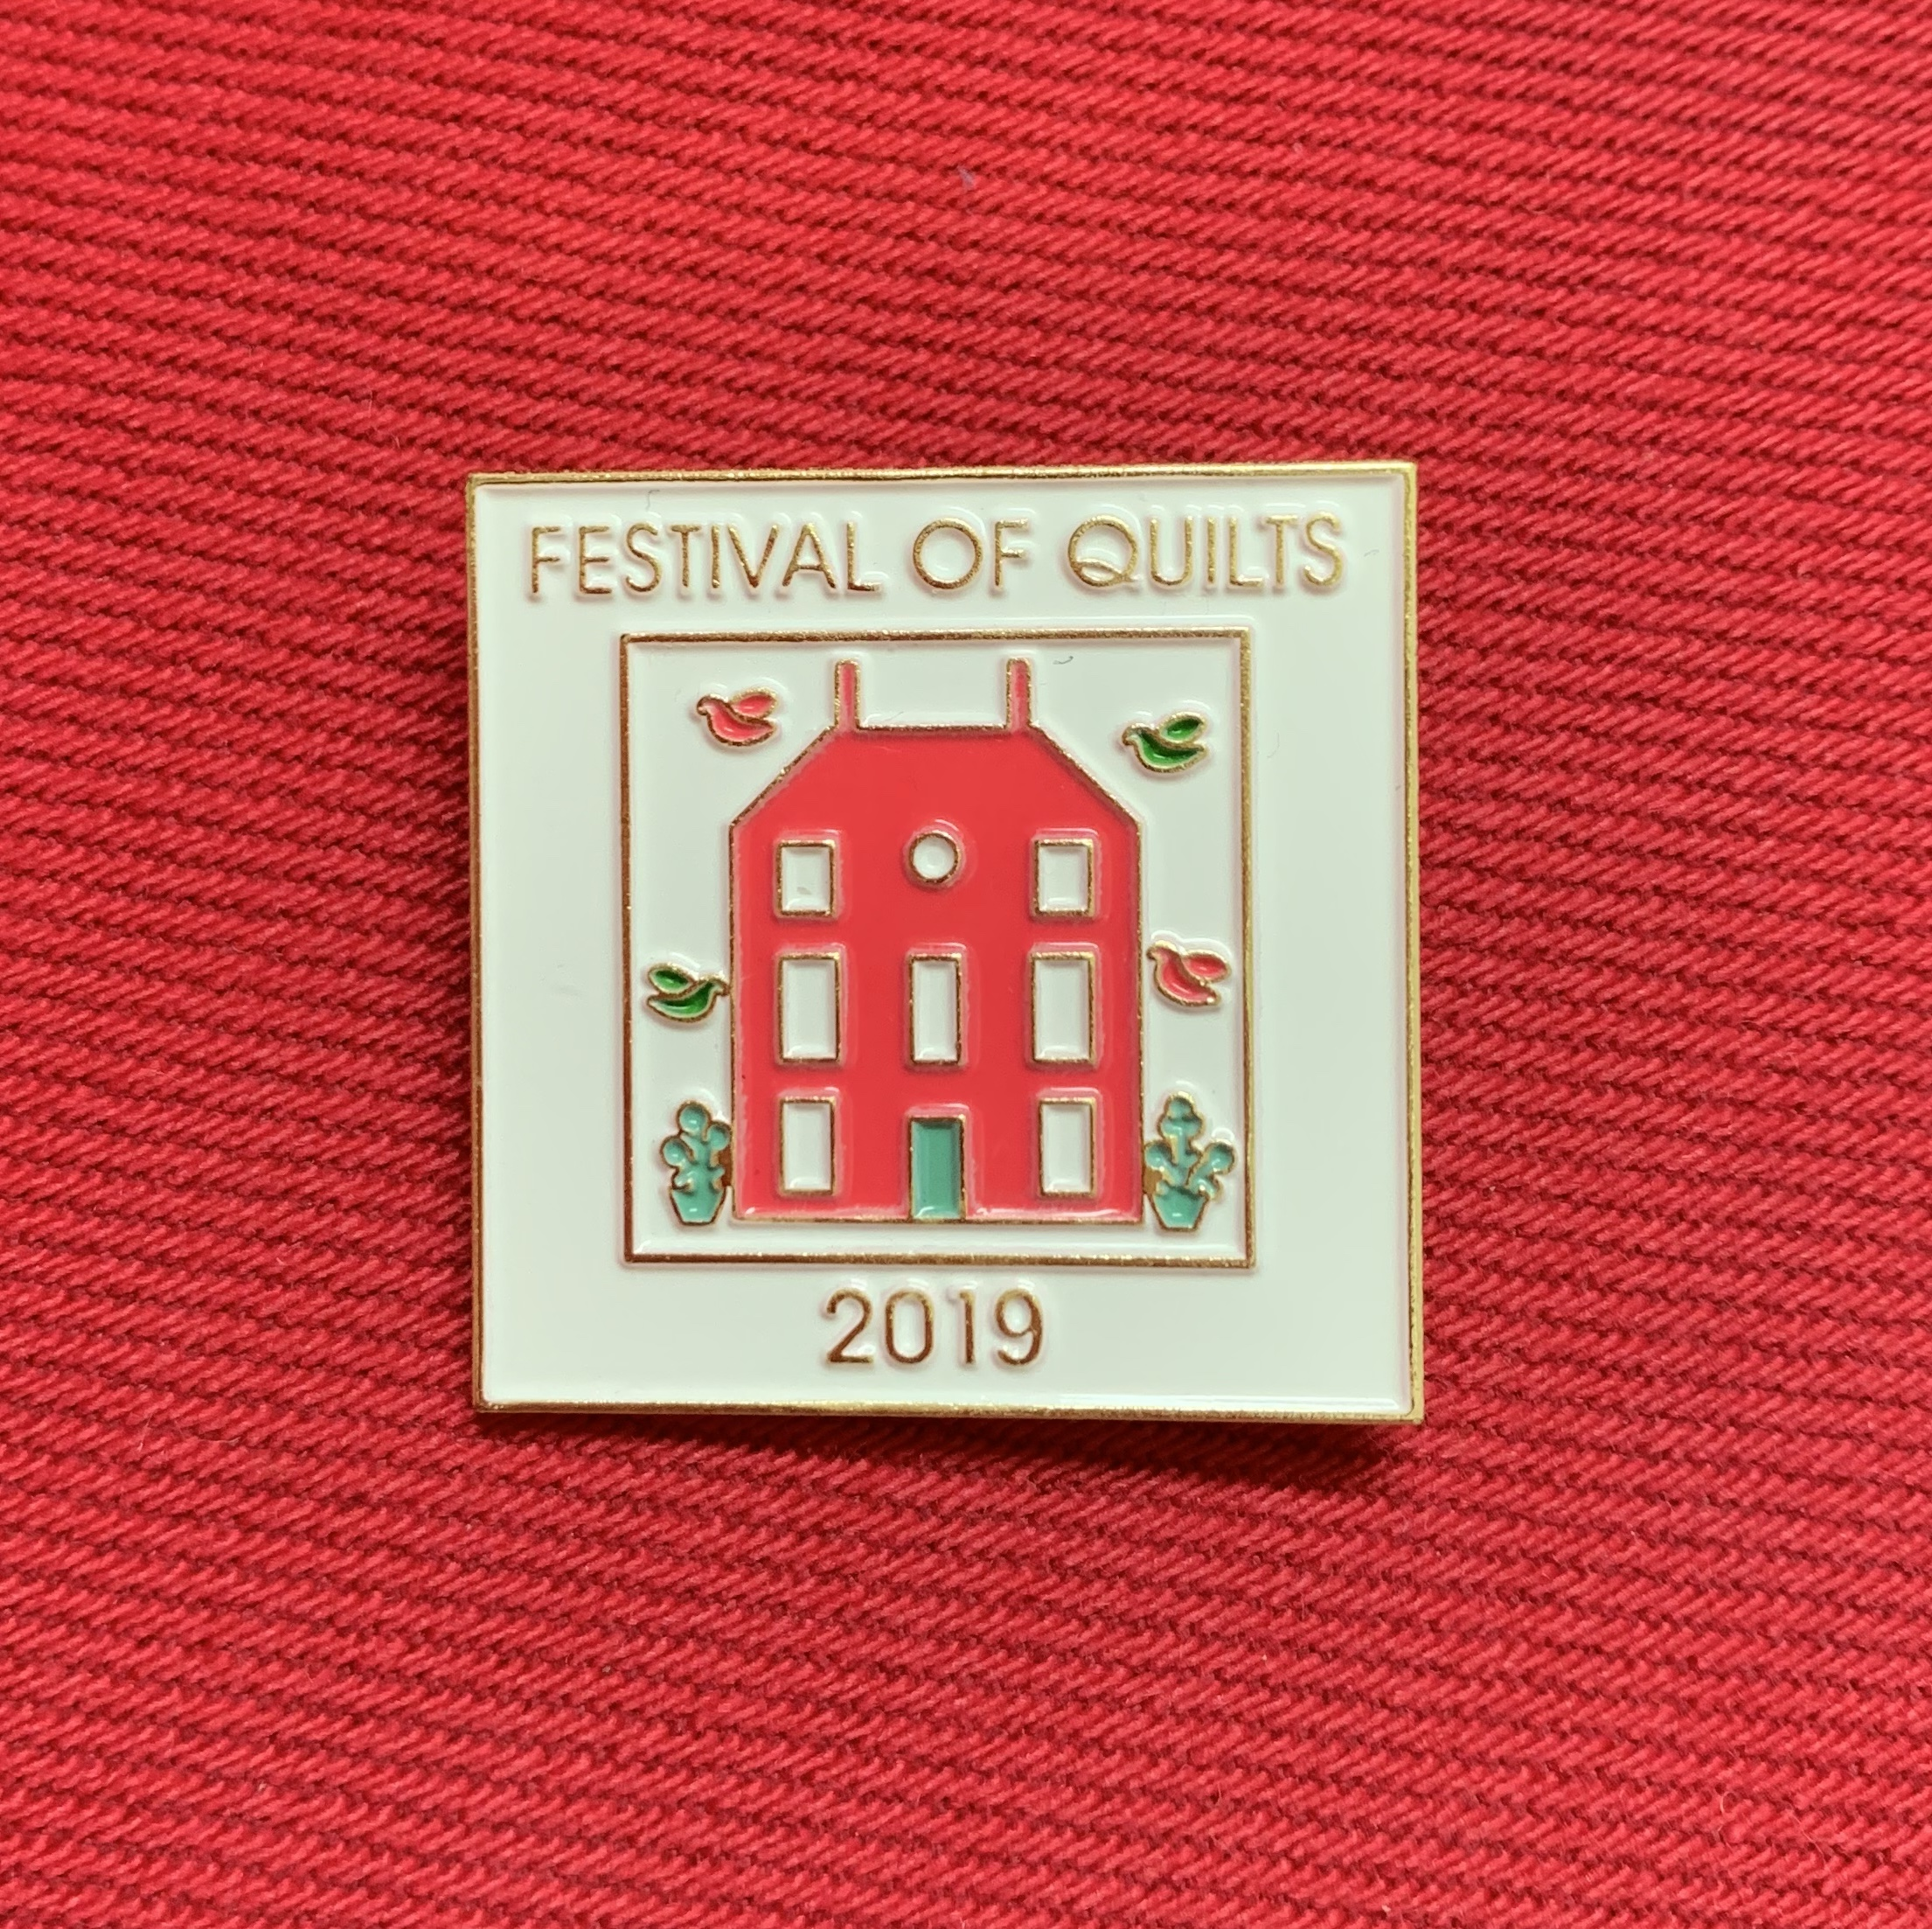 Festival of Quilts pin.jpg